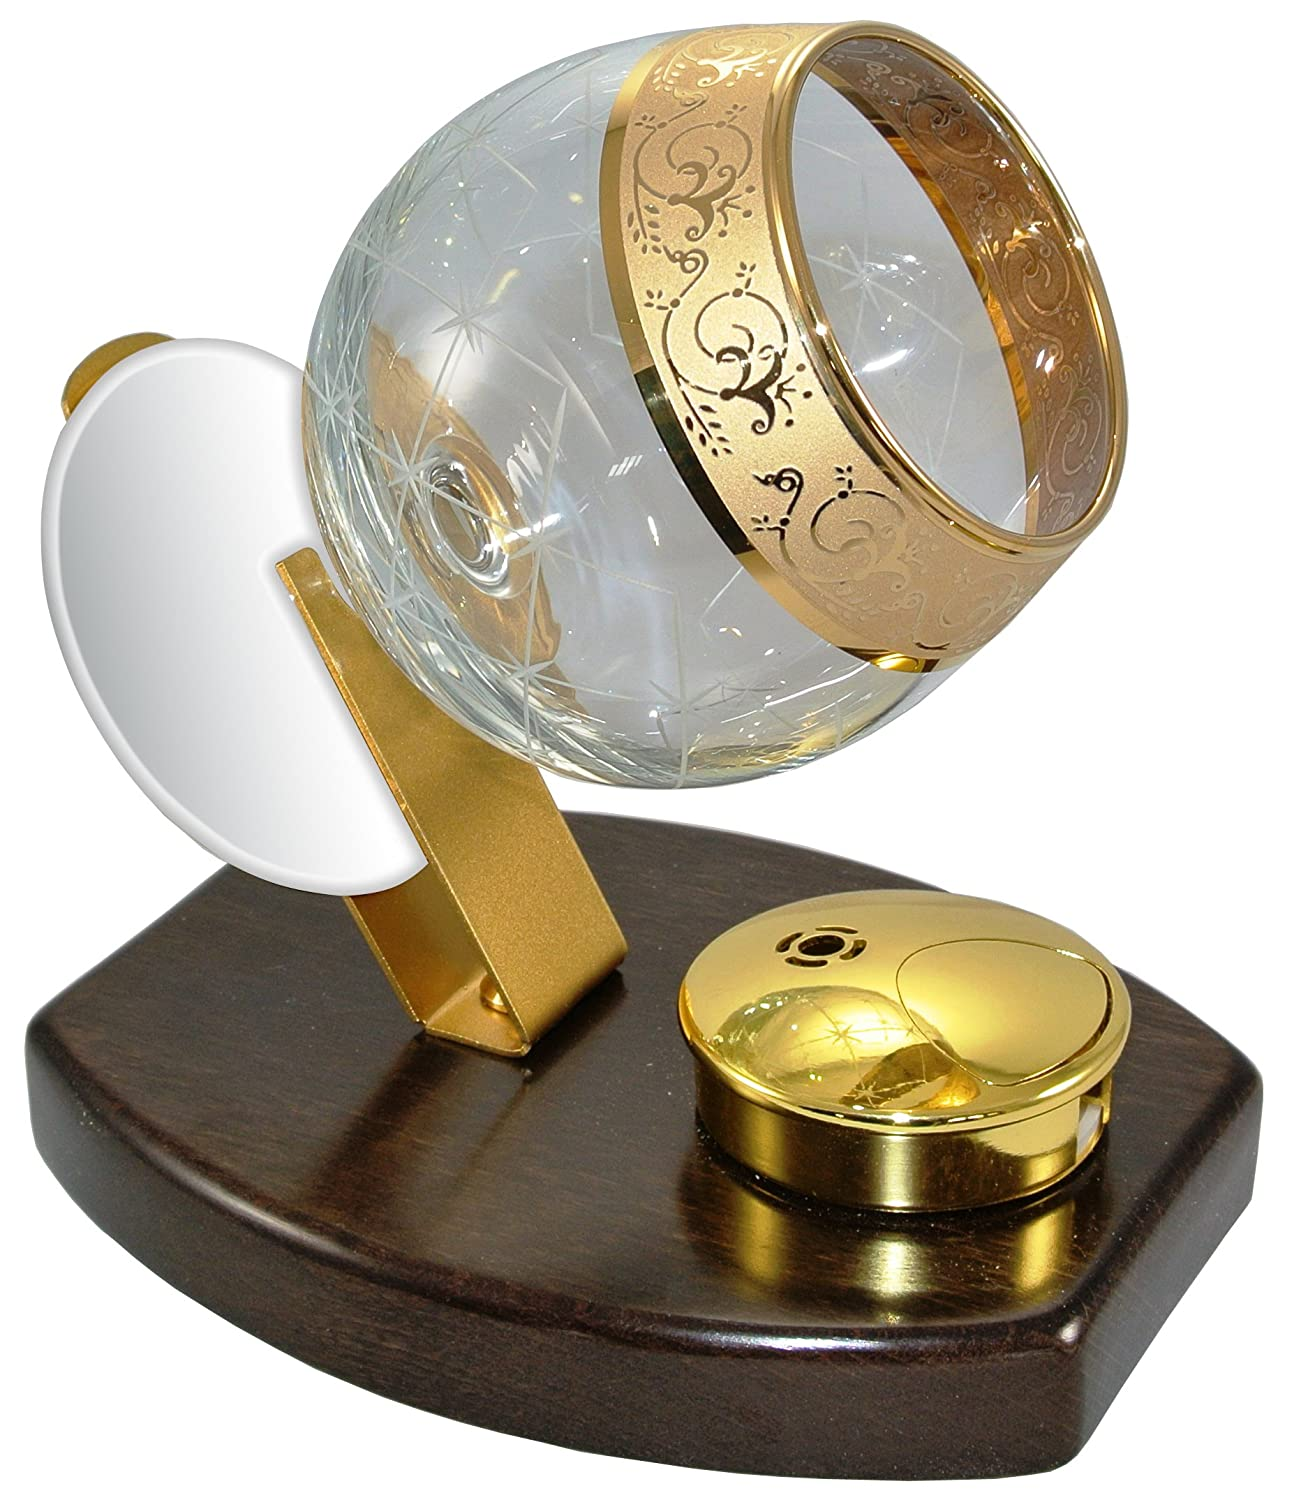 COWA 600100 - Glass warmer for brandy, cognac and Armagnac made of glass.